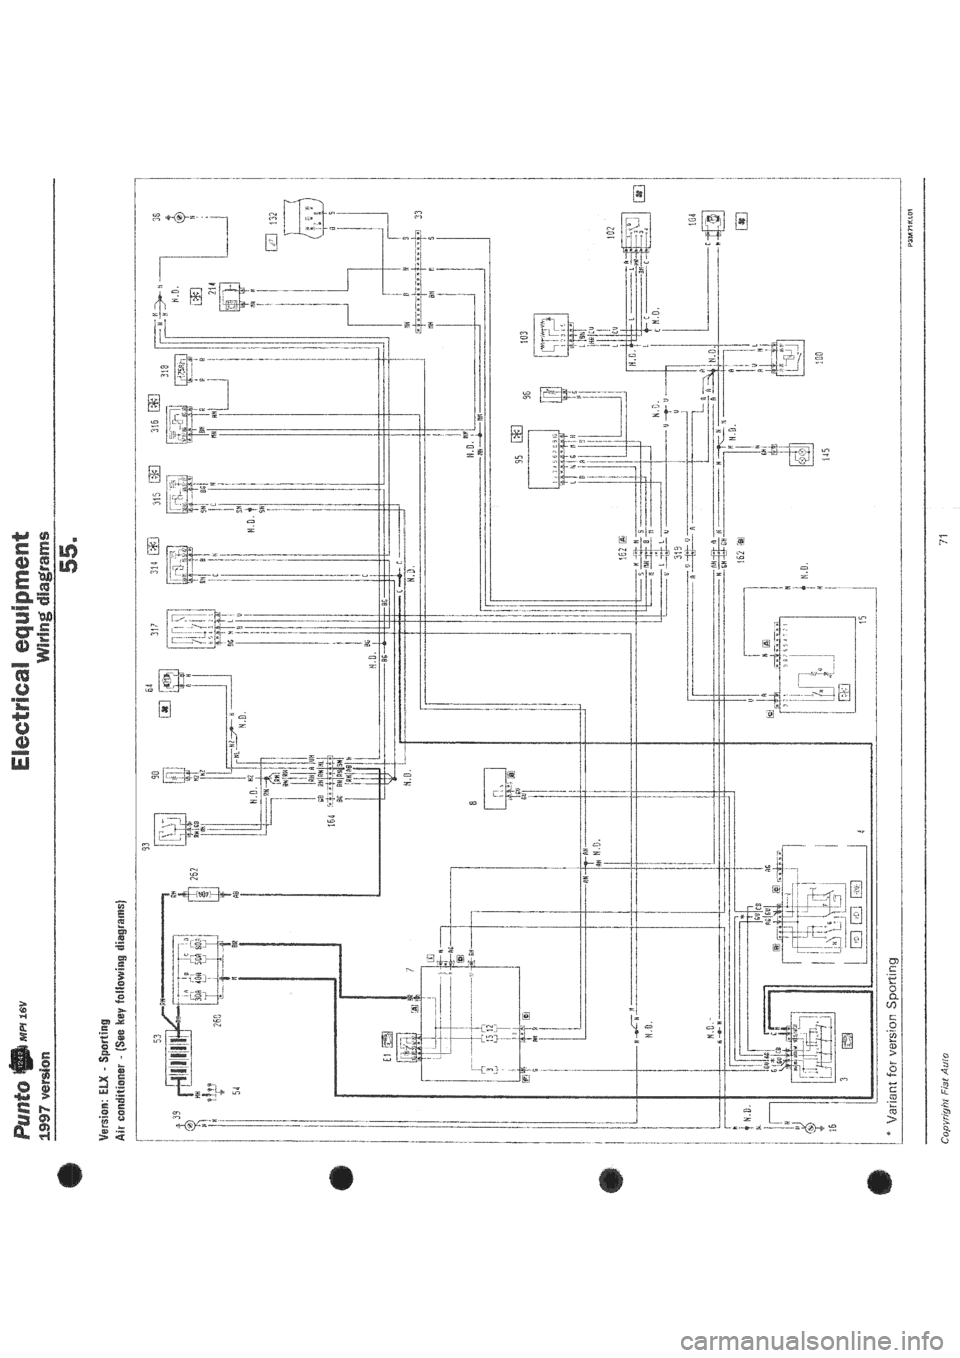 1982 fiat spider 124 wiring diagram fiat 124 exhaust